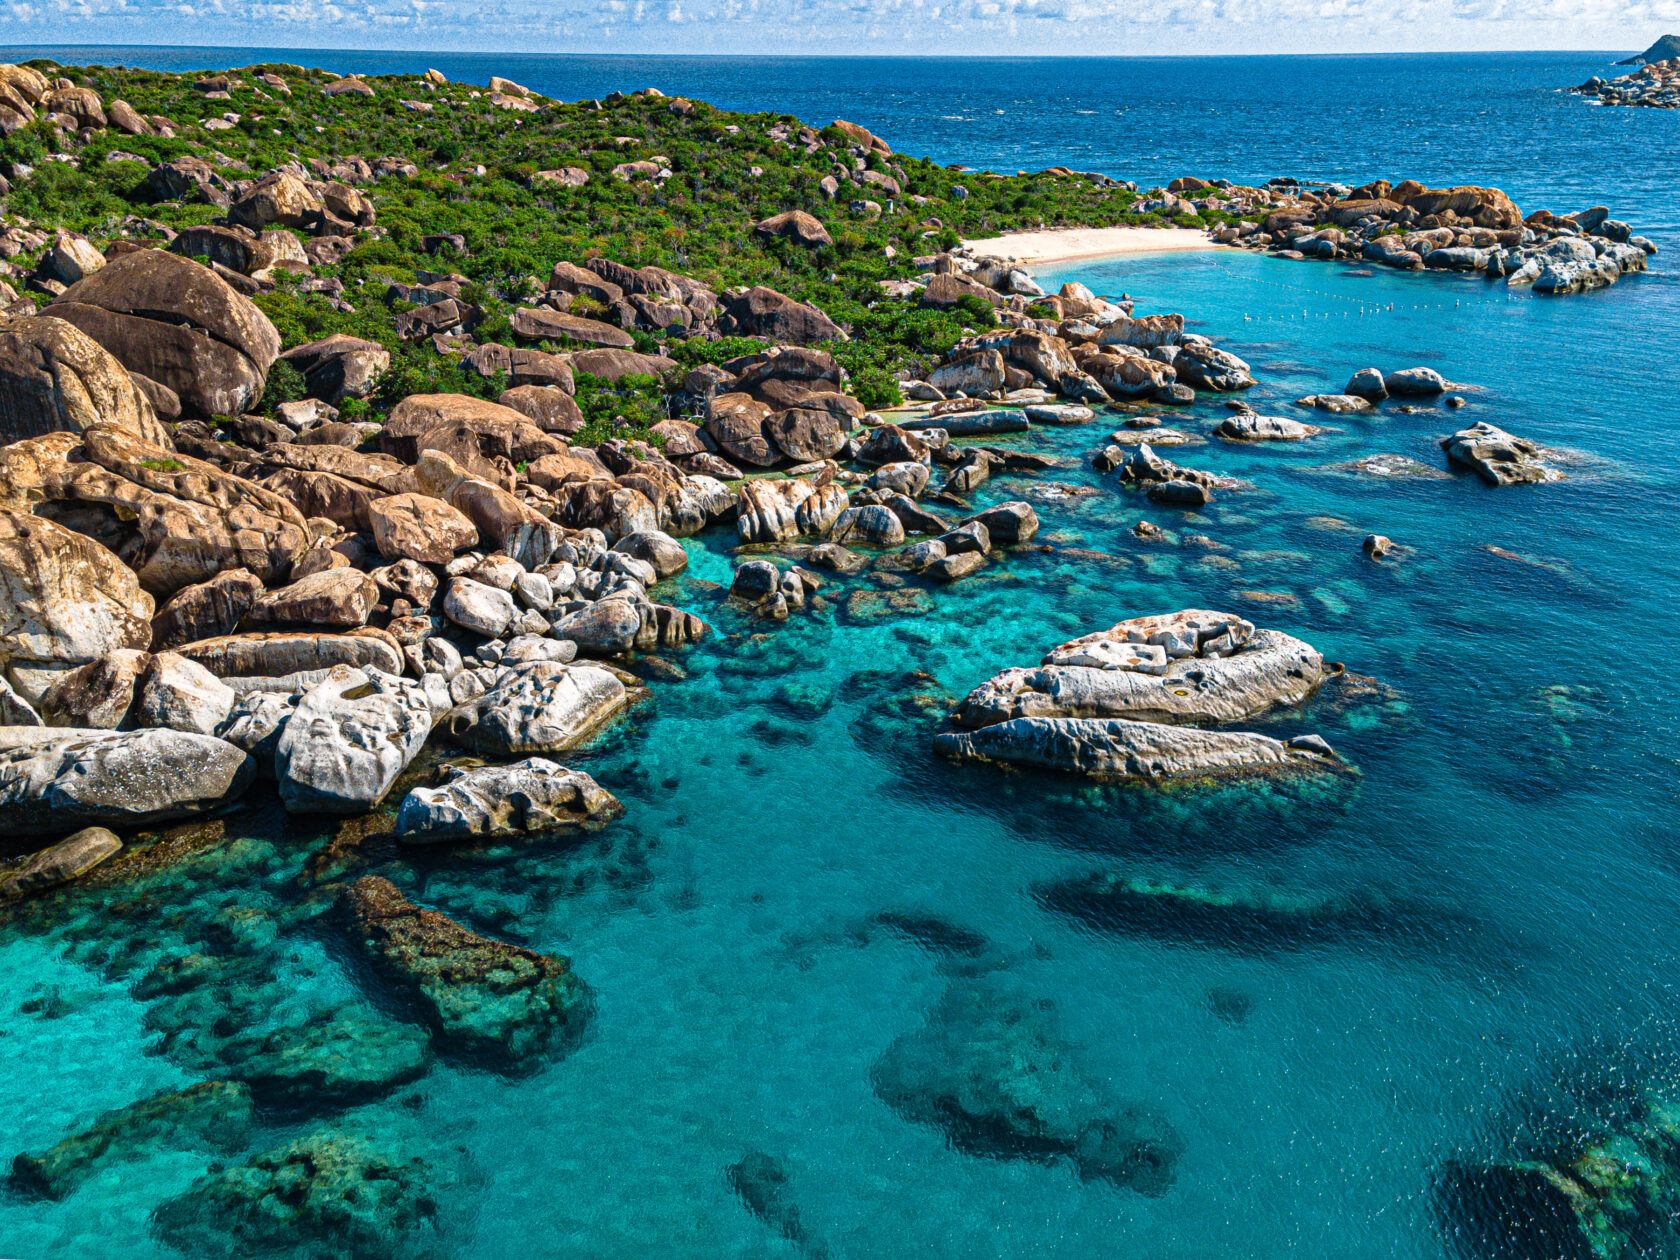 Secluded beach with rocks and clear blue water